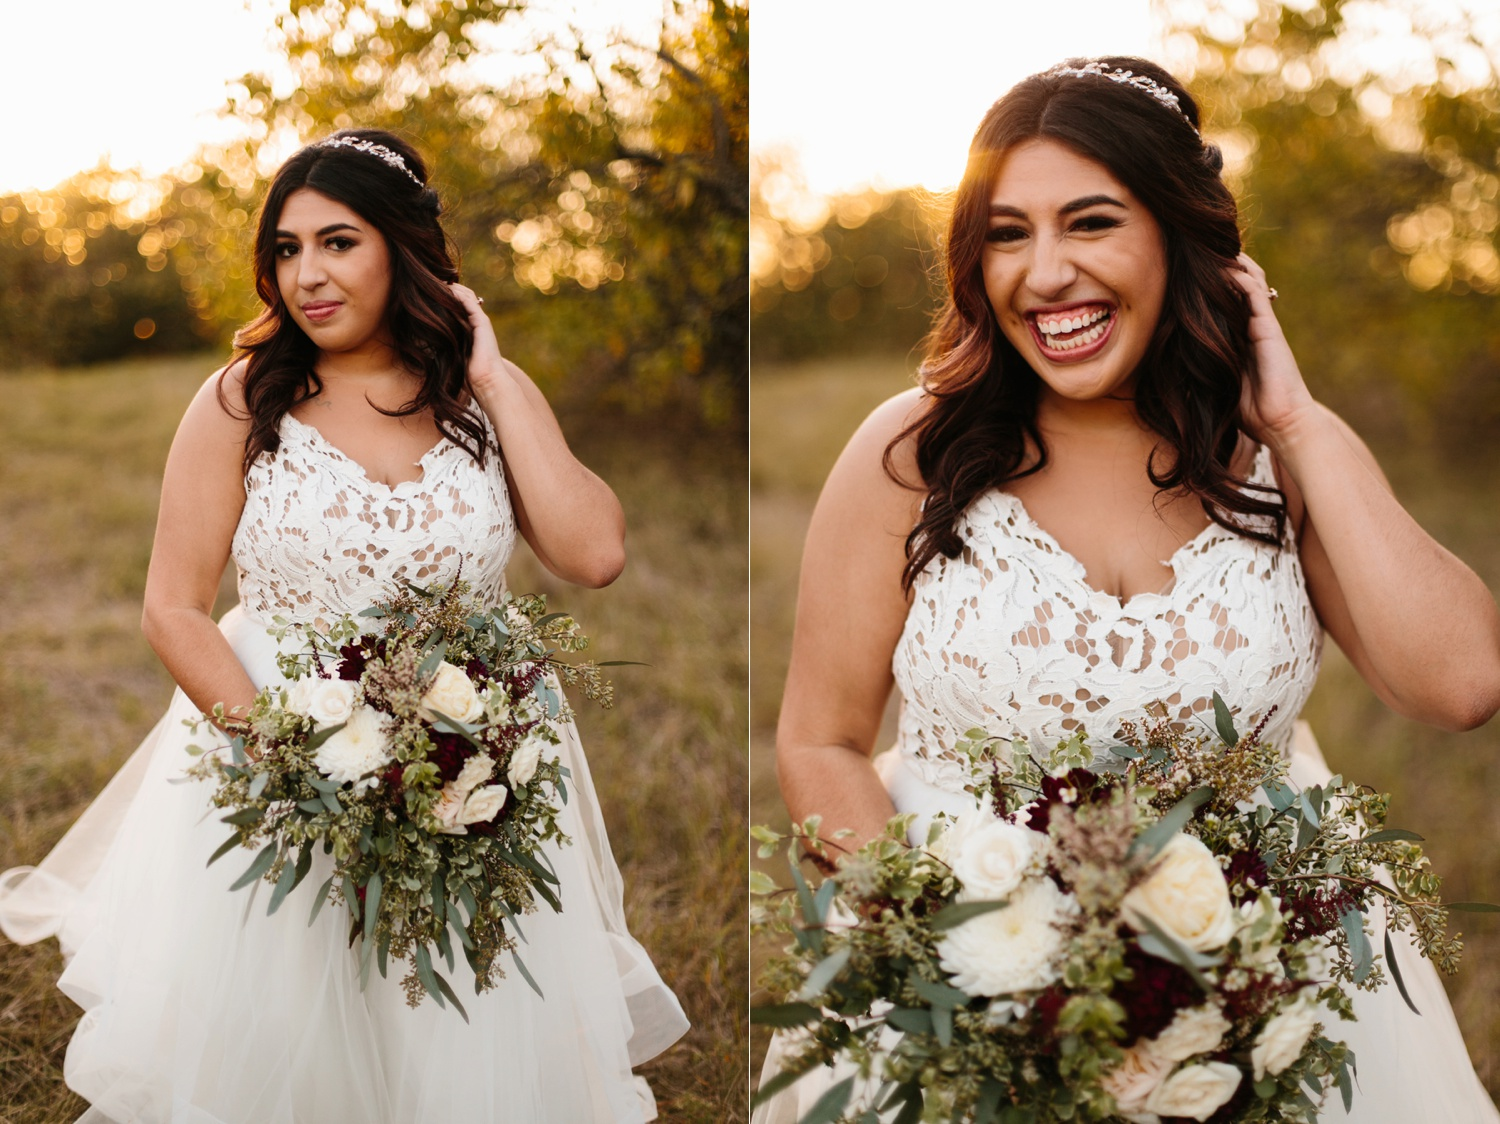 Grant + Lysette | a vibrant, deep burgundy and navy, and mixed metals wedding at Hidden Pines Chapel by North Texas Wedding Photographer Rachel Meagan Photography 241